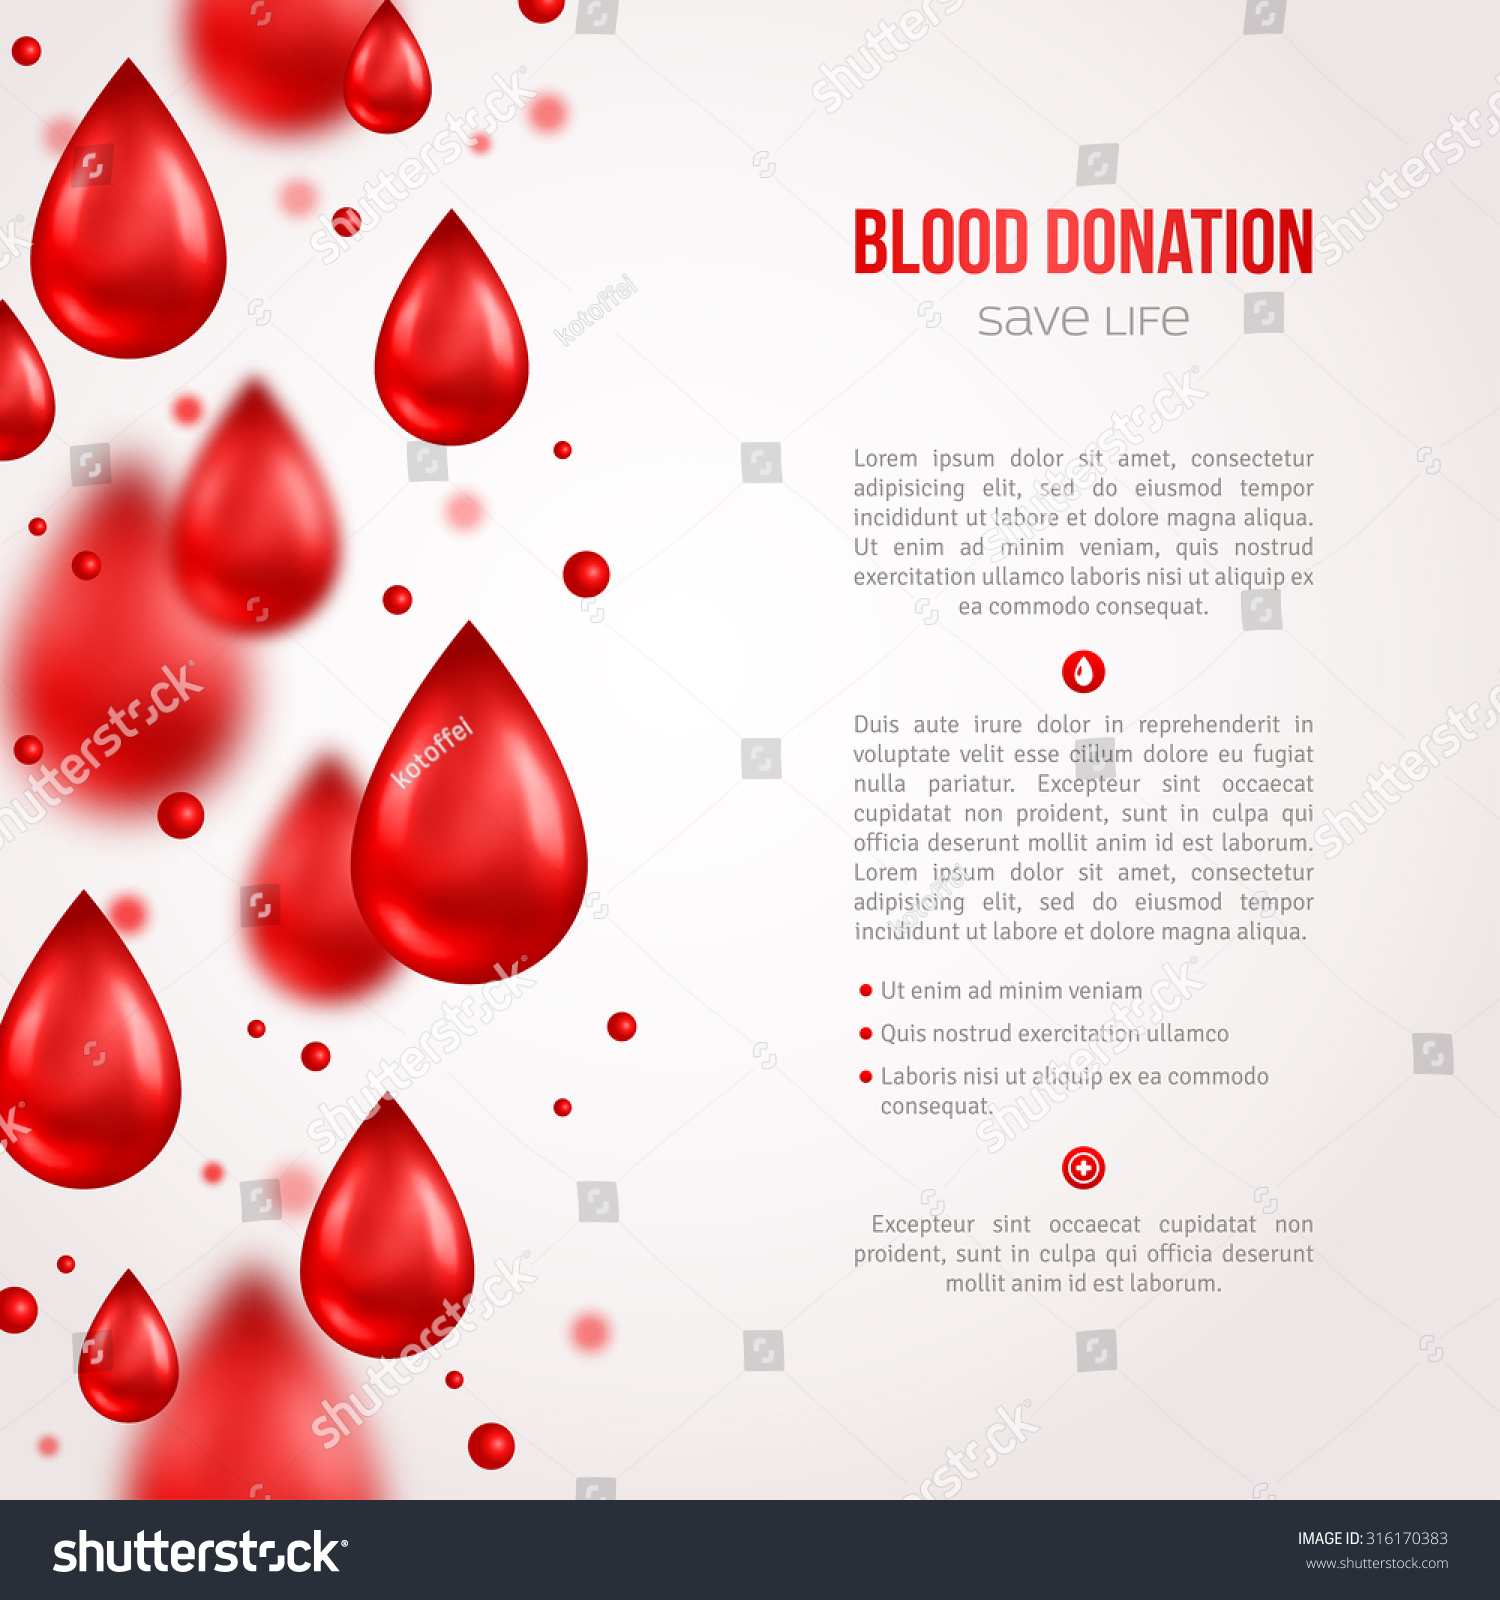 Poster design on blood donation - Donor Poster Or Flyer Blood Donation Lifesaving And Hospital Assistance Vector Illustration World